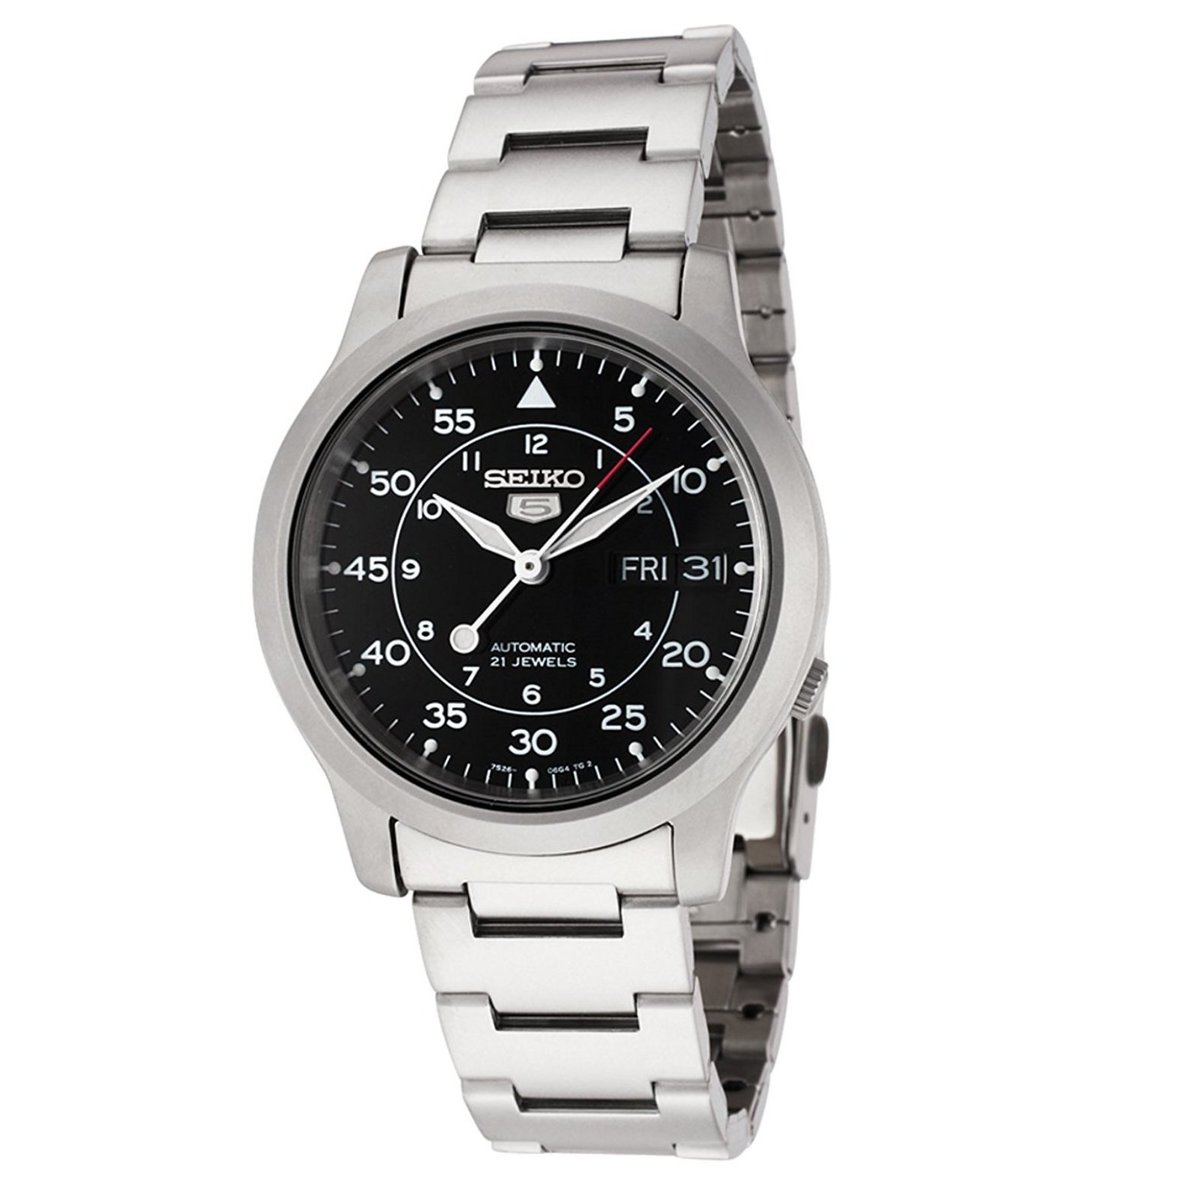 Seiko 5 Automatic Men's Watch SNK809K1 parallel import